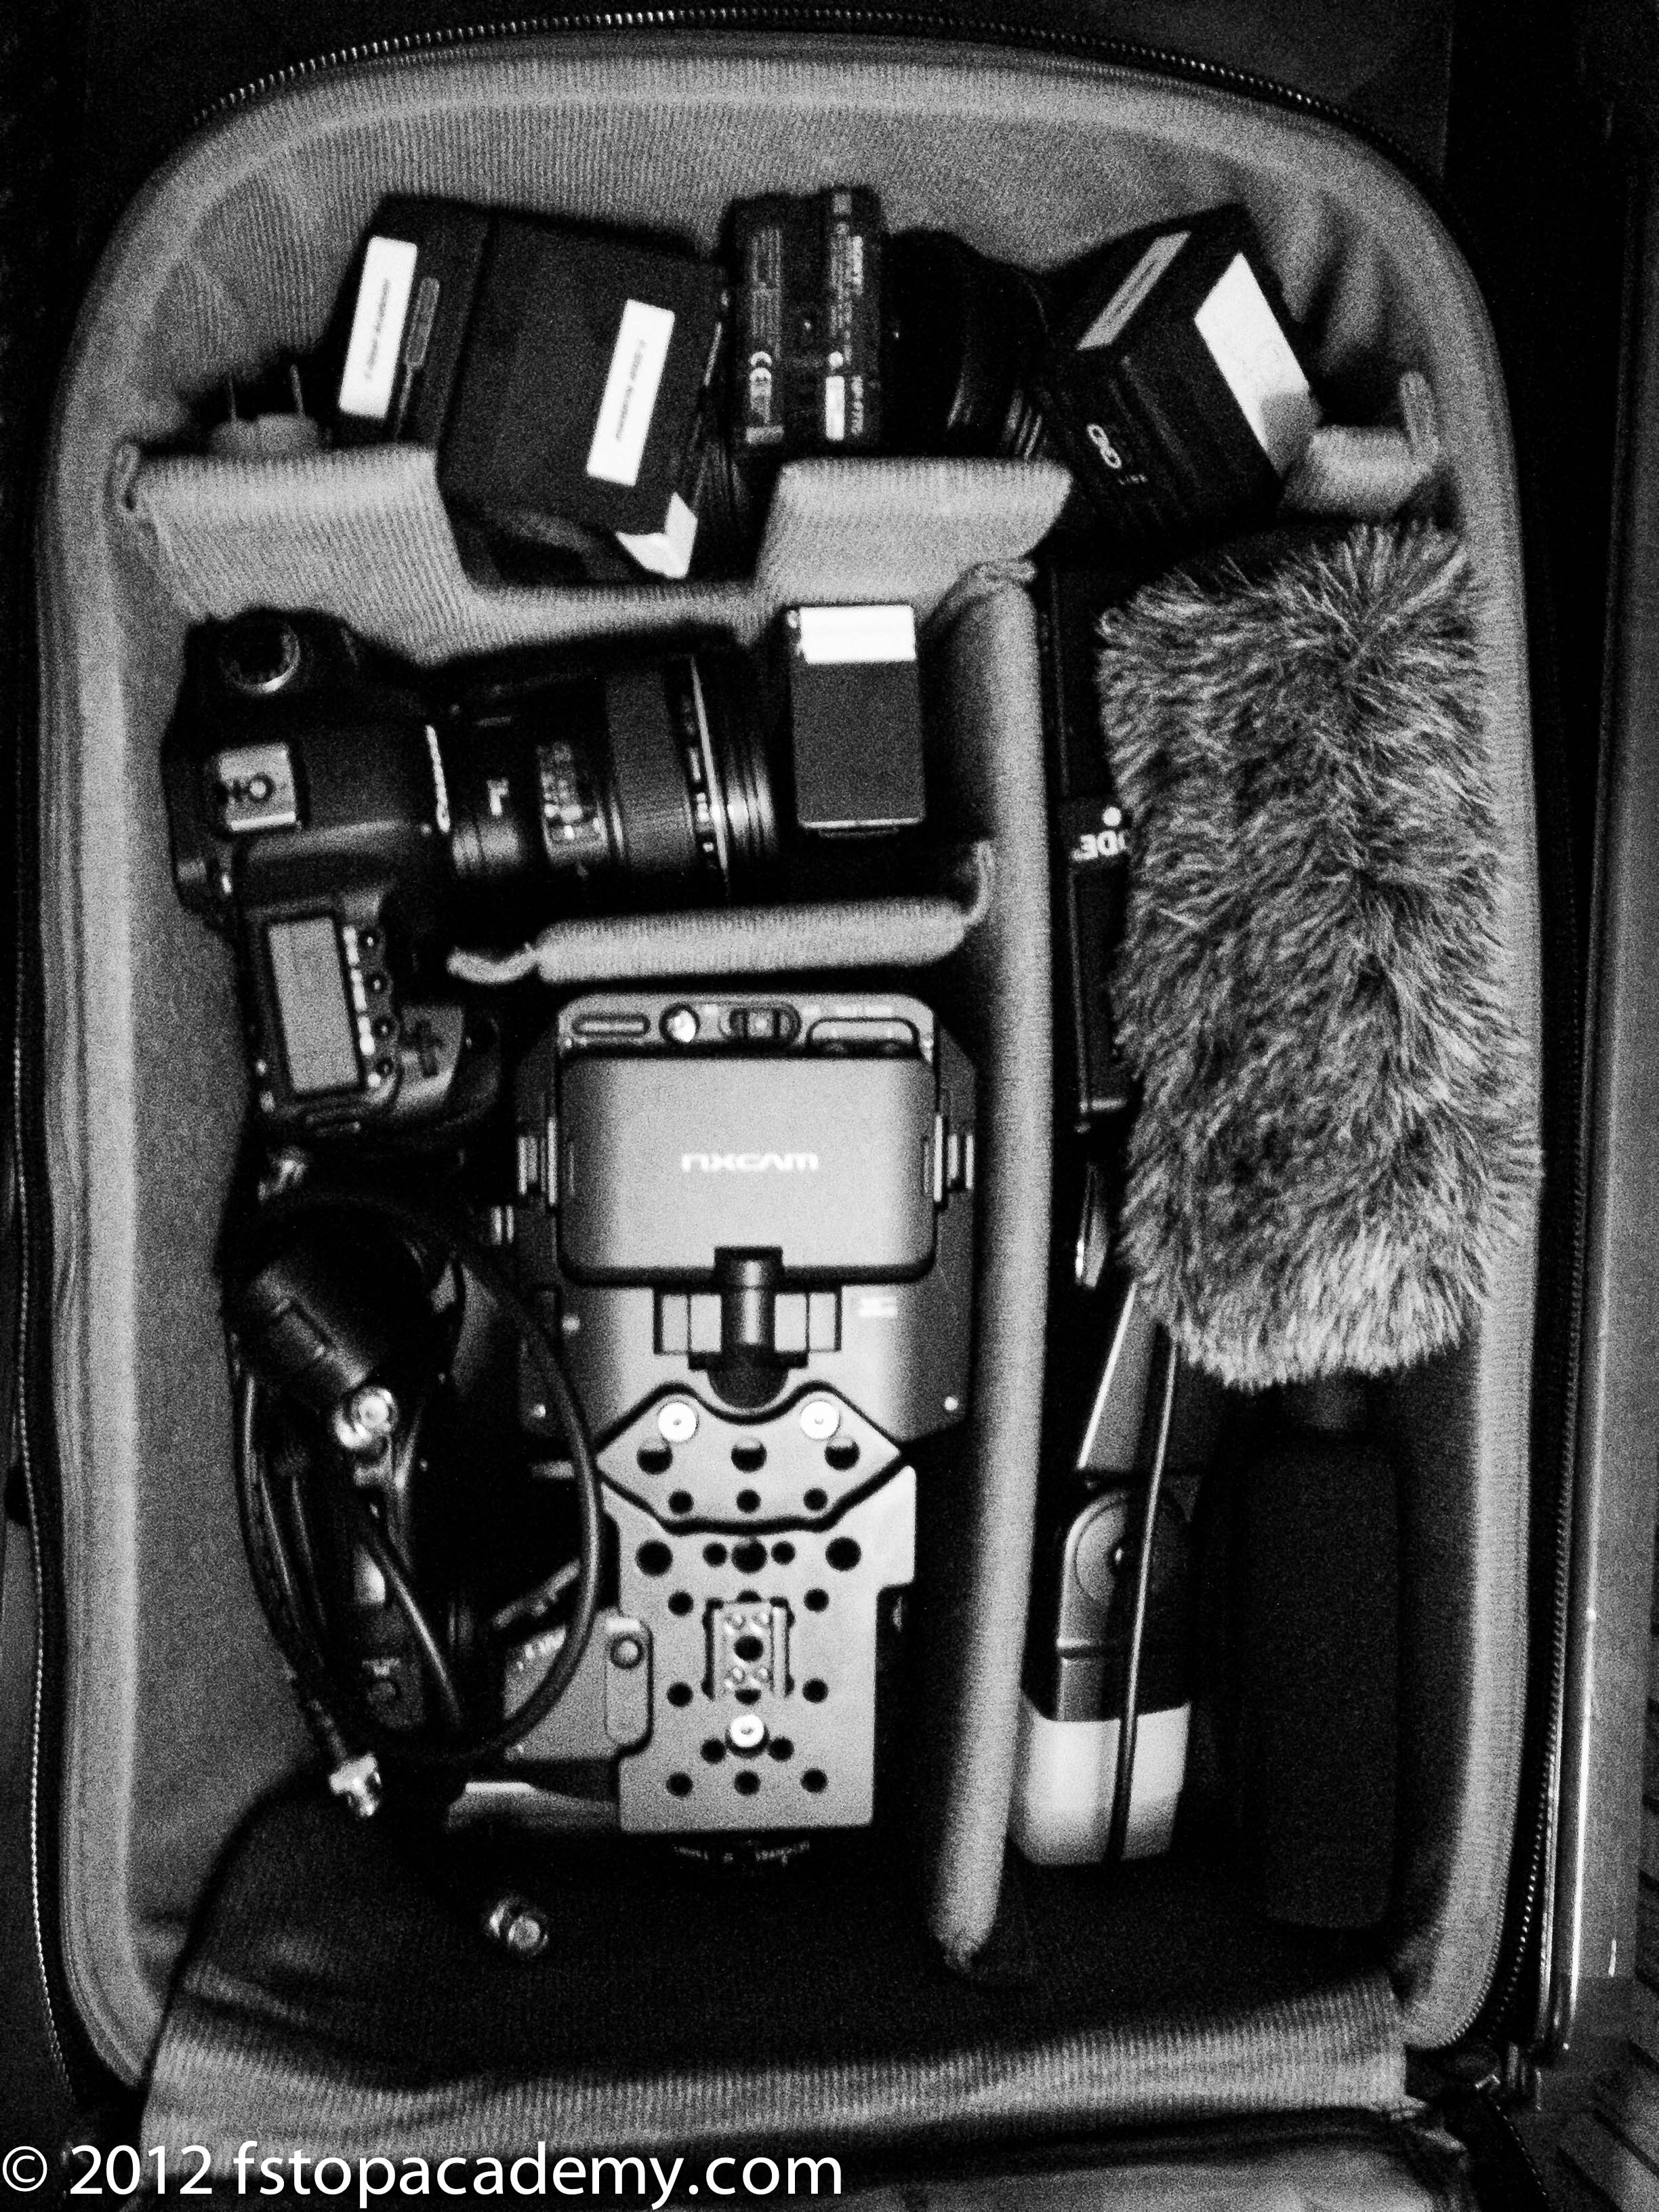 Gear packed in Airport International